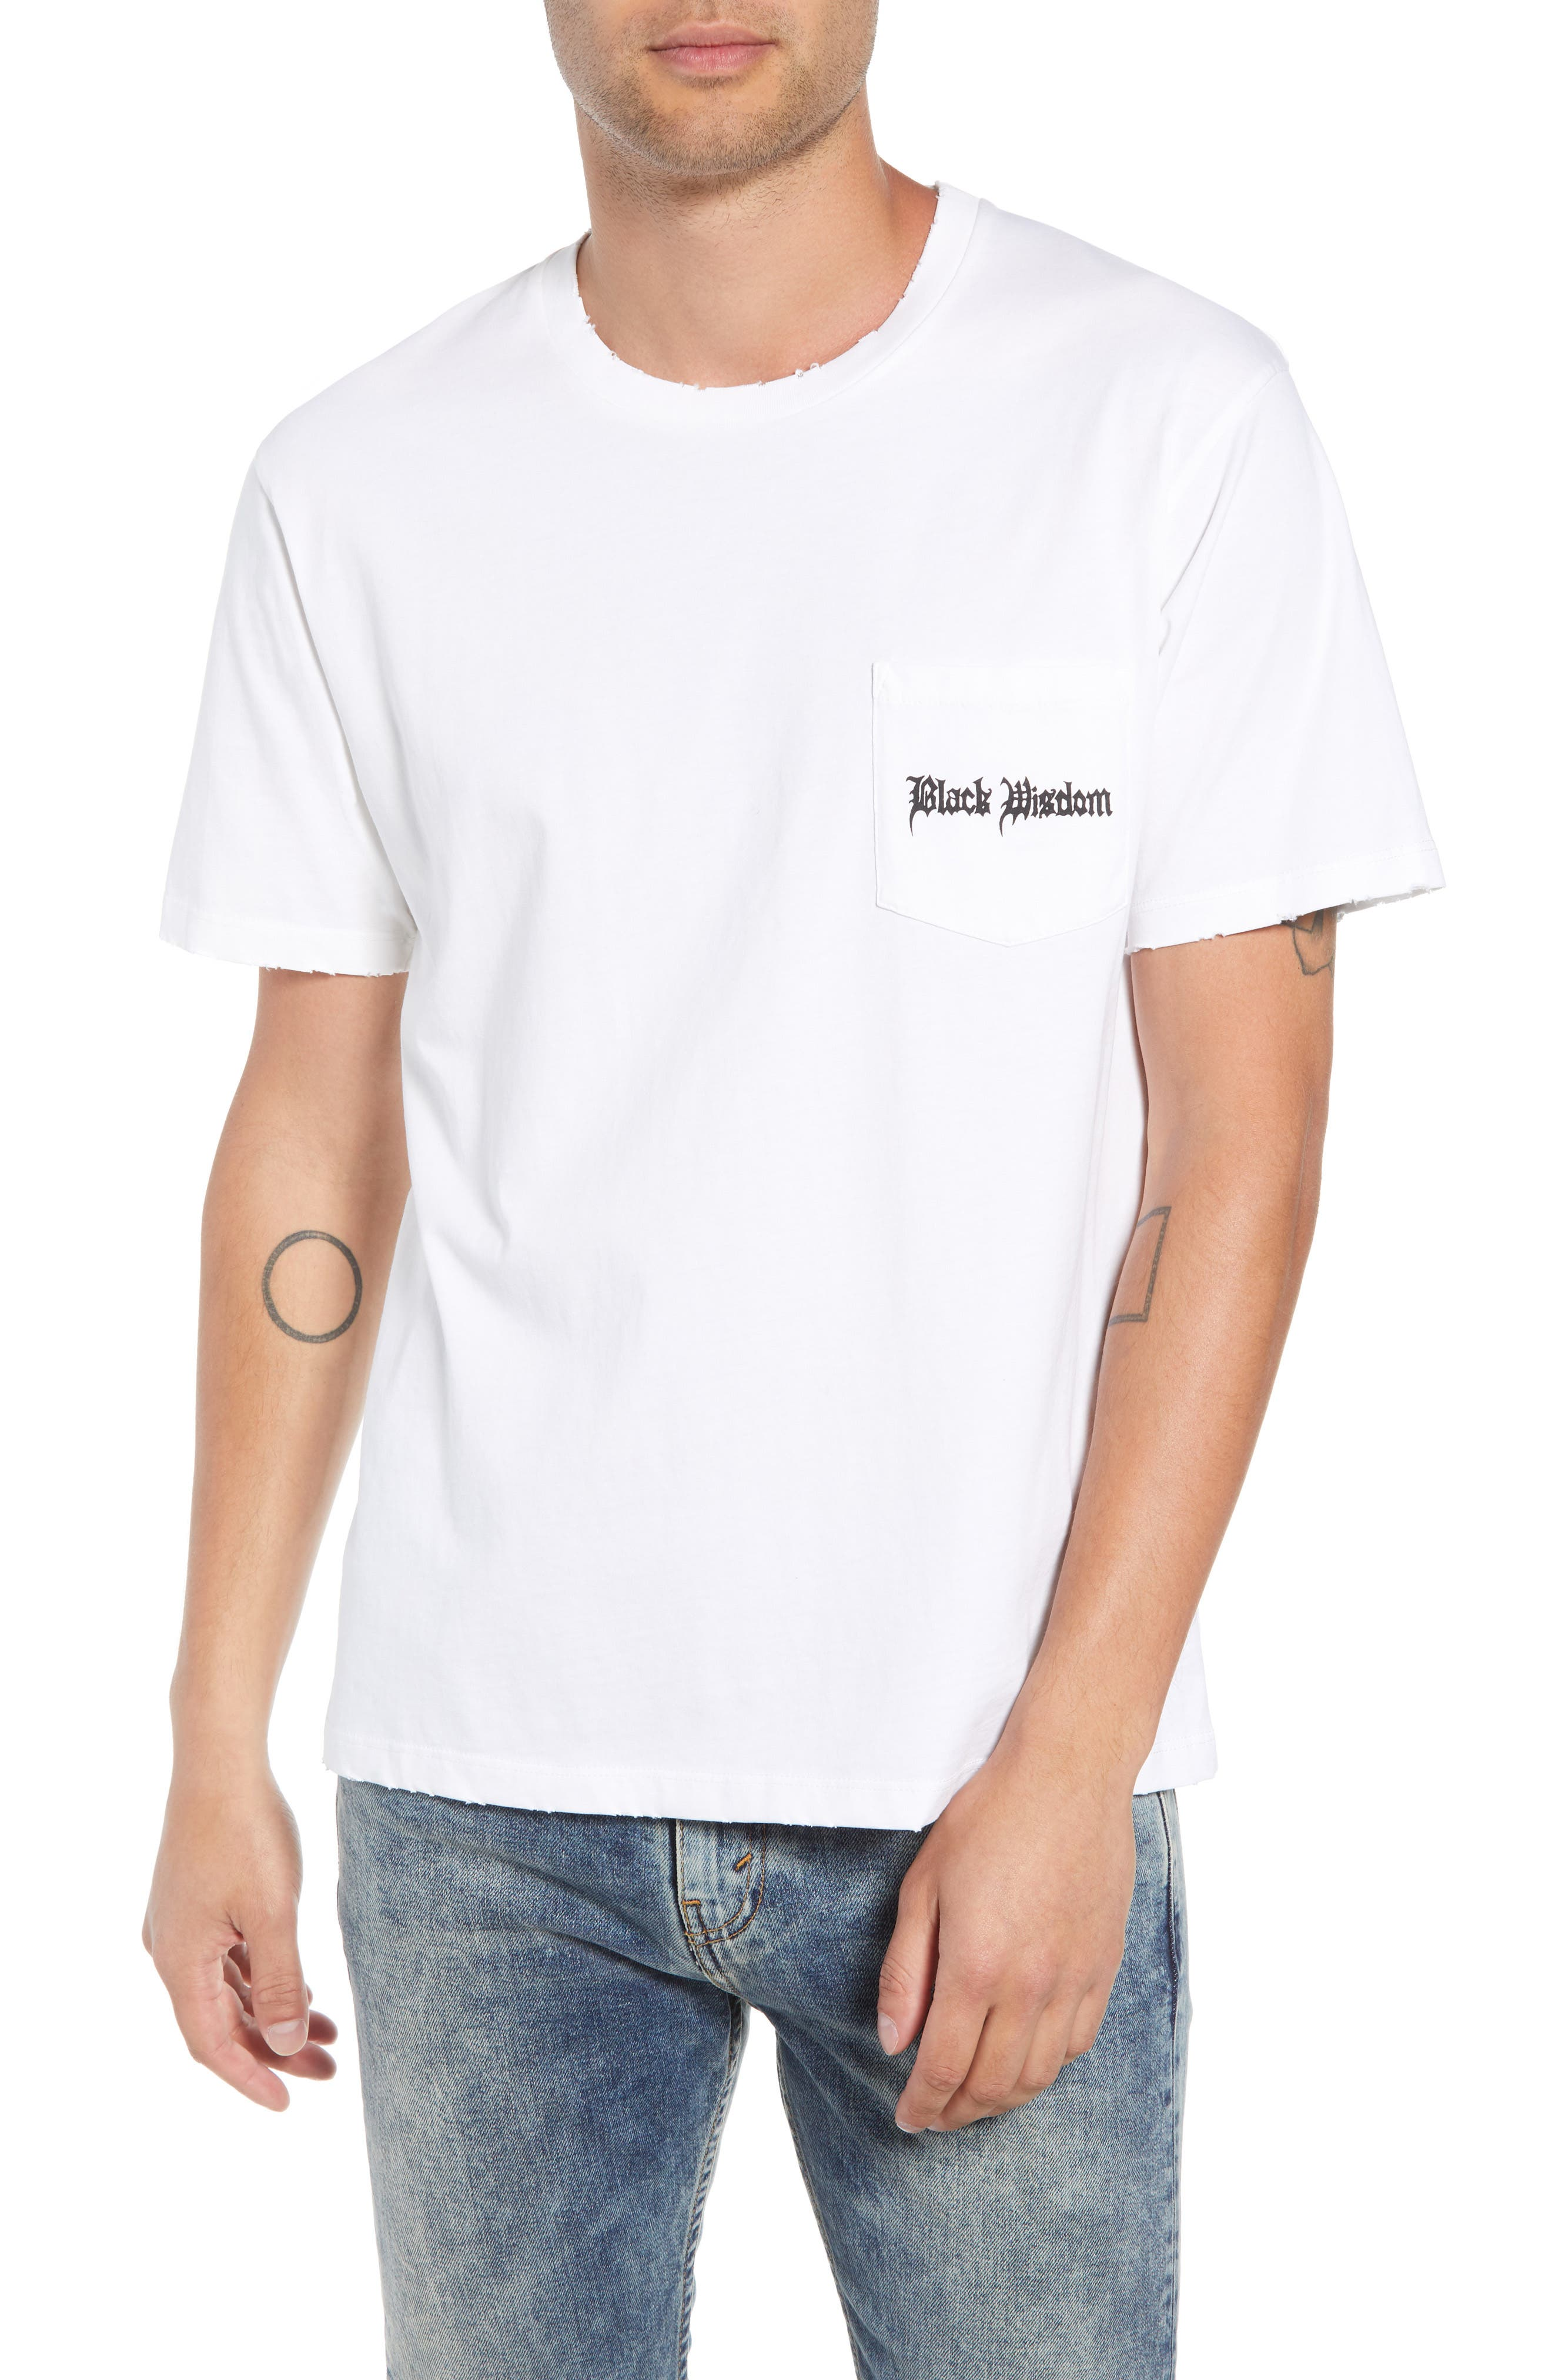 THE KOOPLES Black Wisdom Graphic Pocket T-Shirt in White